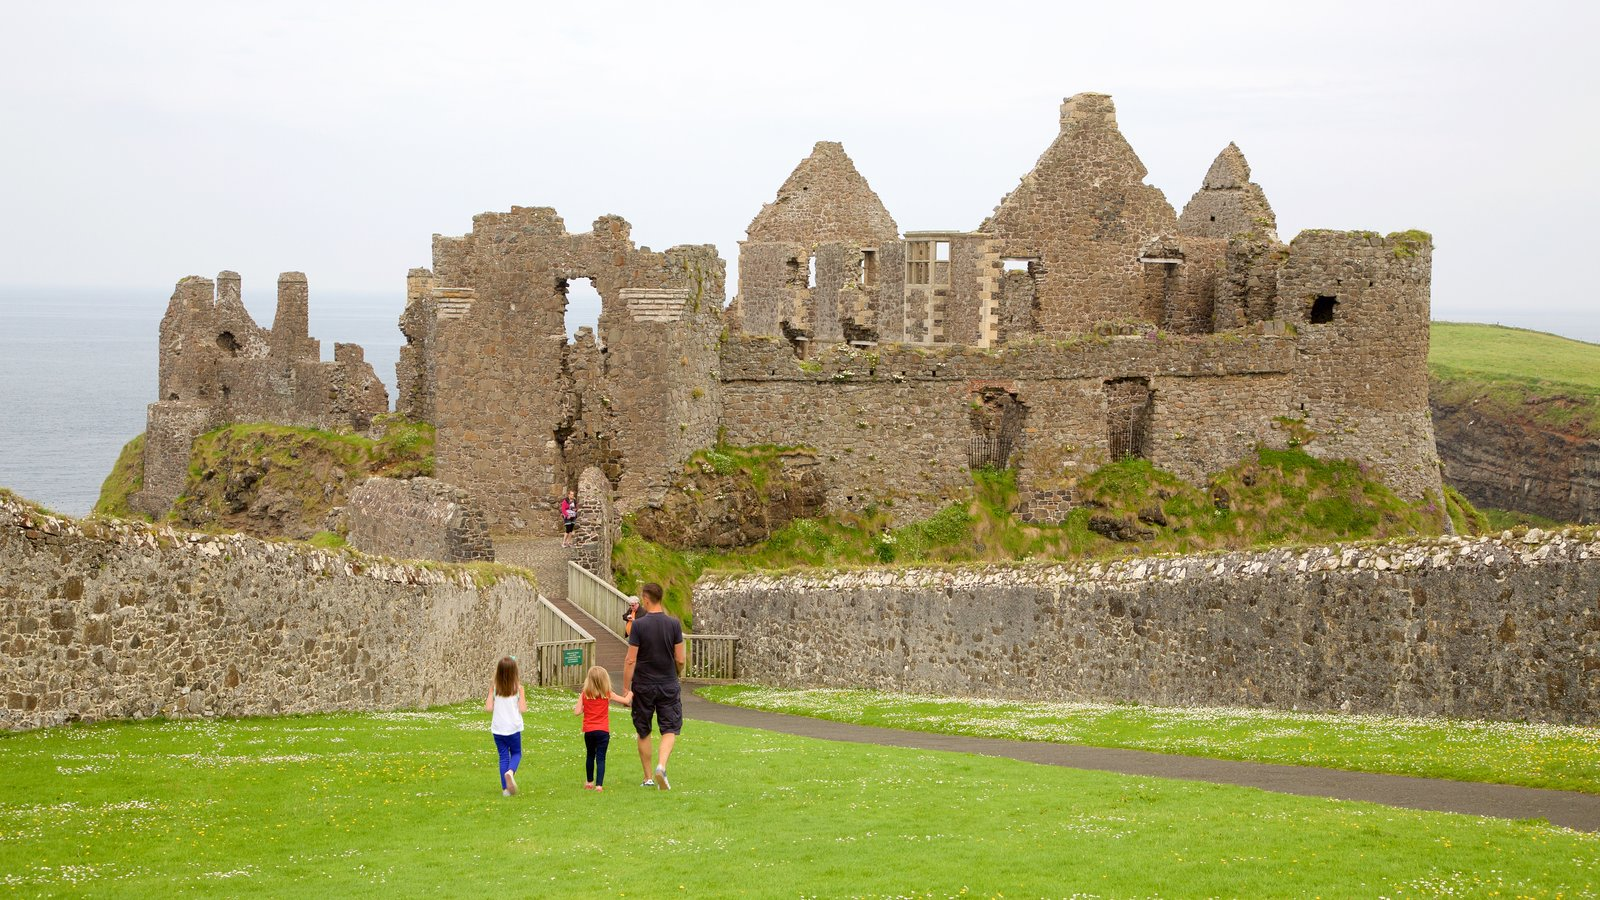 Dunluce Castle which includes a castle, heritage elements and heritage architecture